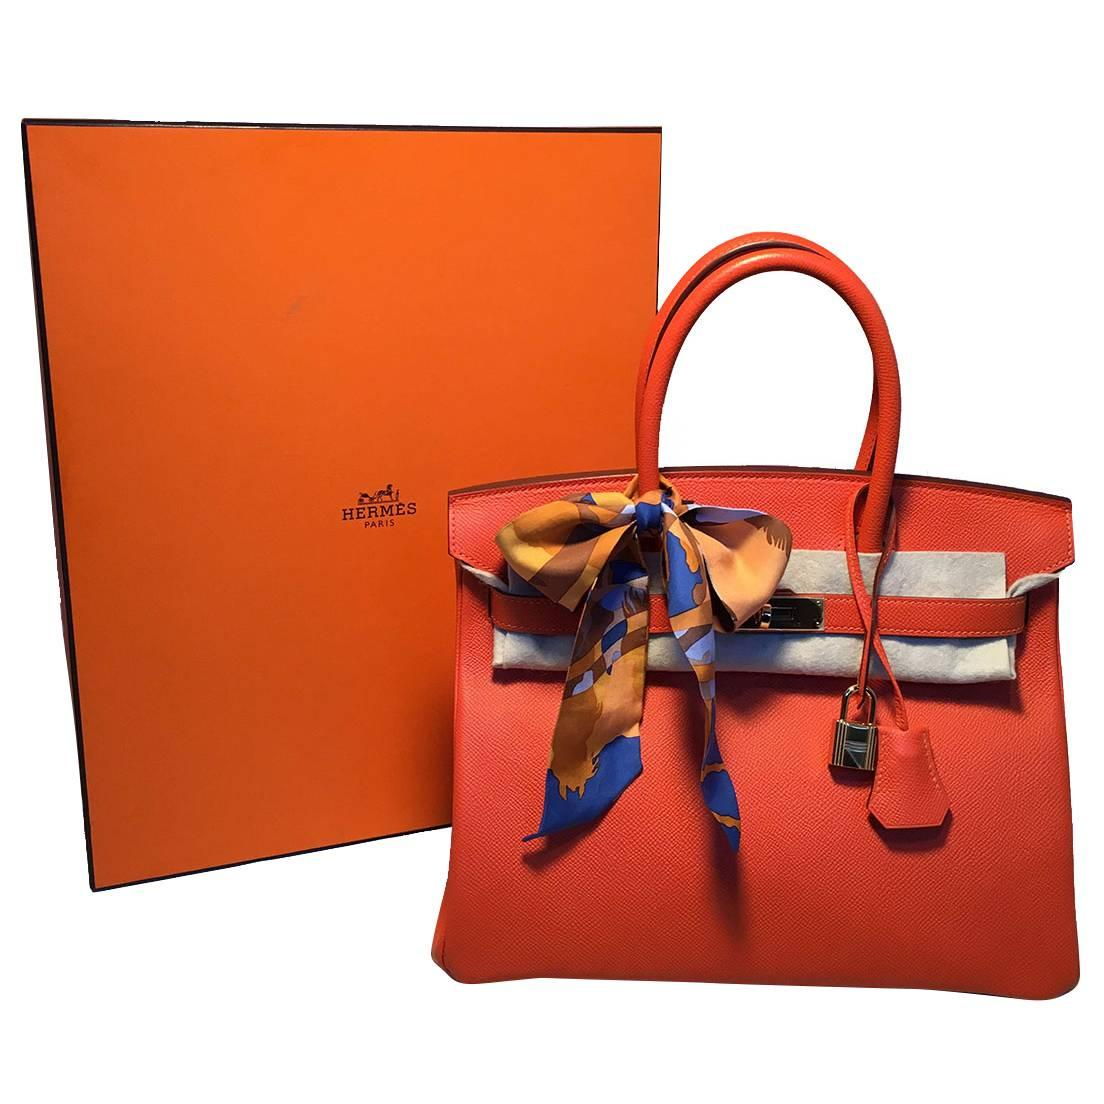 Red Hermes Bags - 215 For Sale on 1stdibs 53168592e1bbf